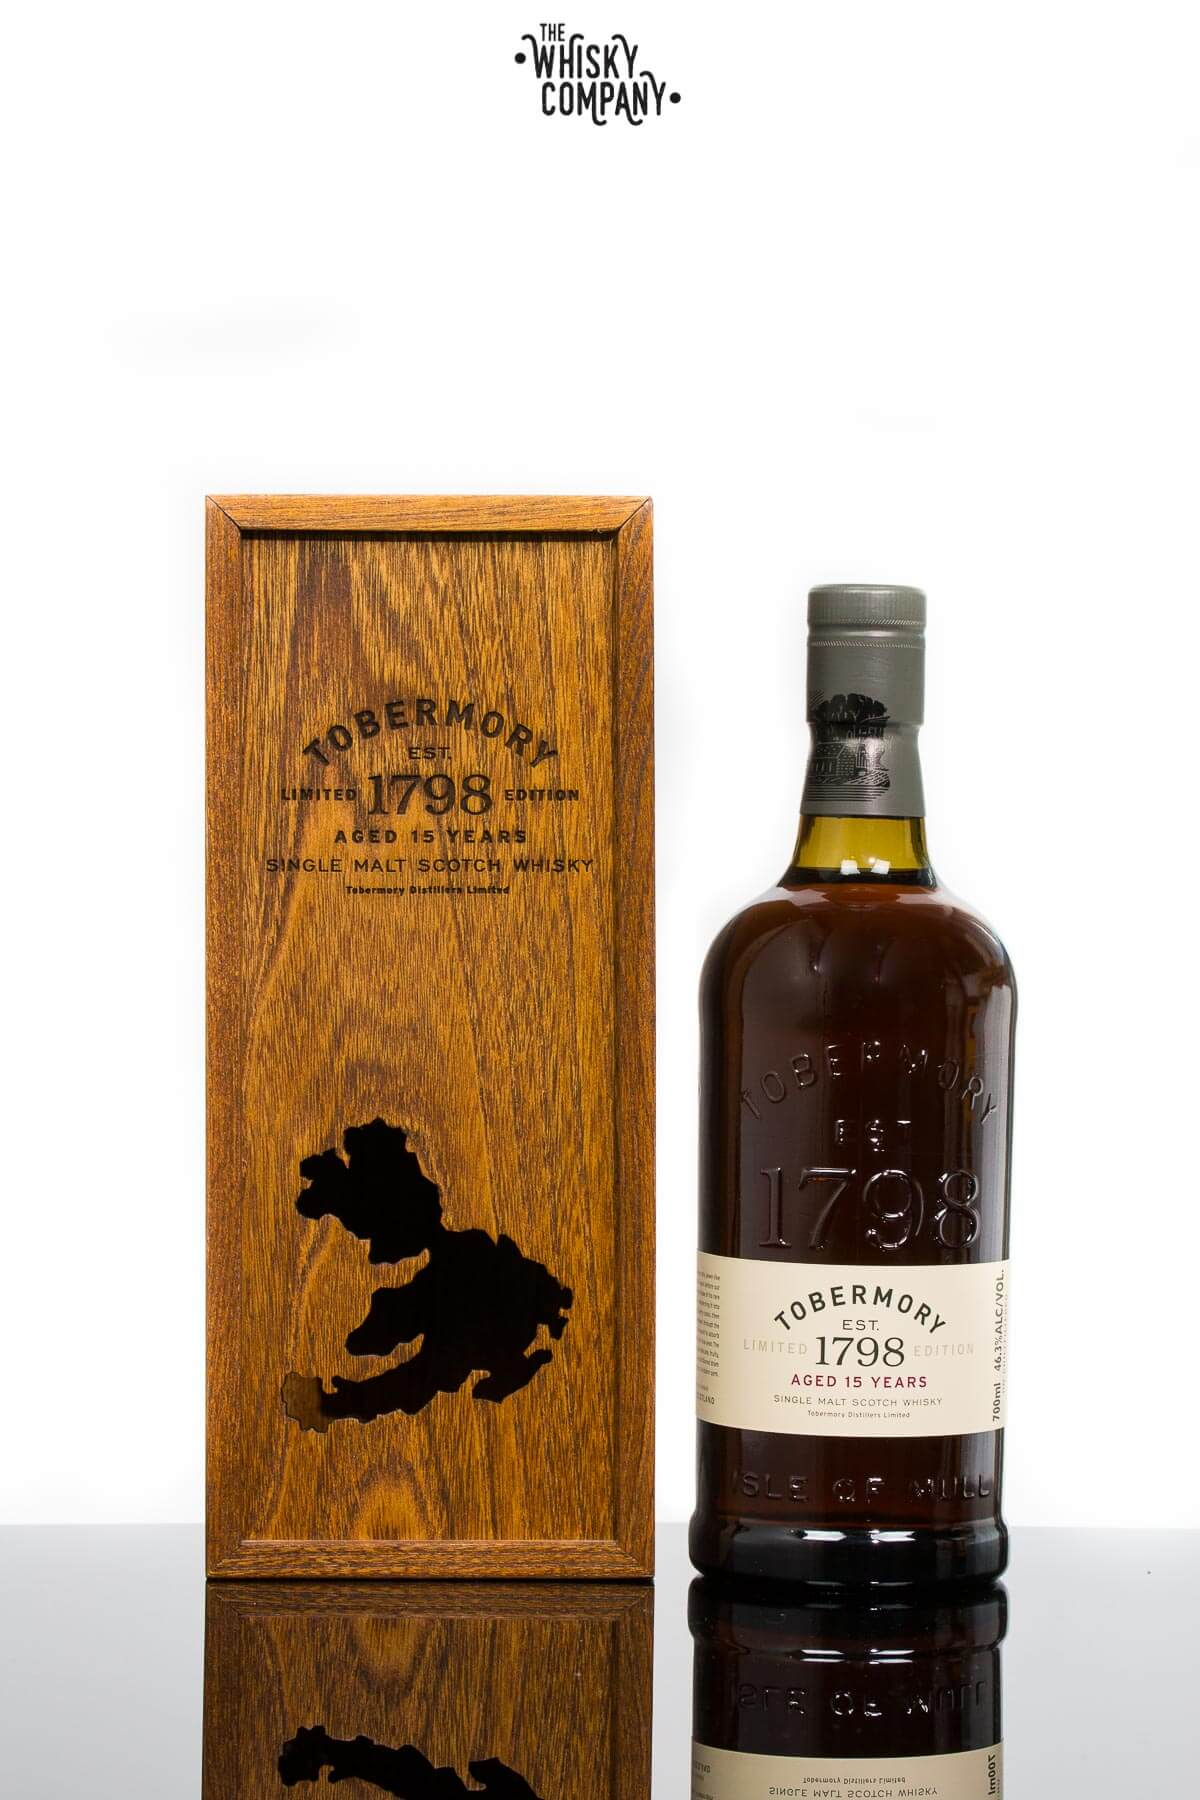 Tobermory 15 Years Old Island Single Malt Scotch Whisky